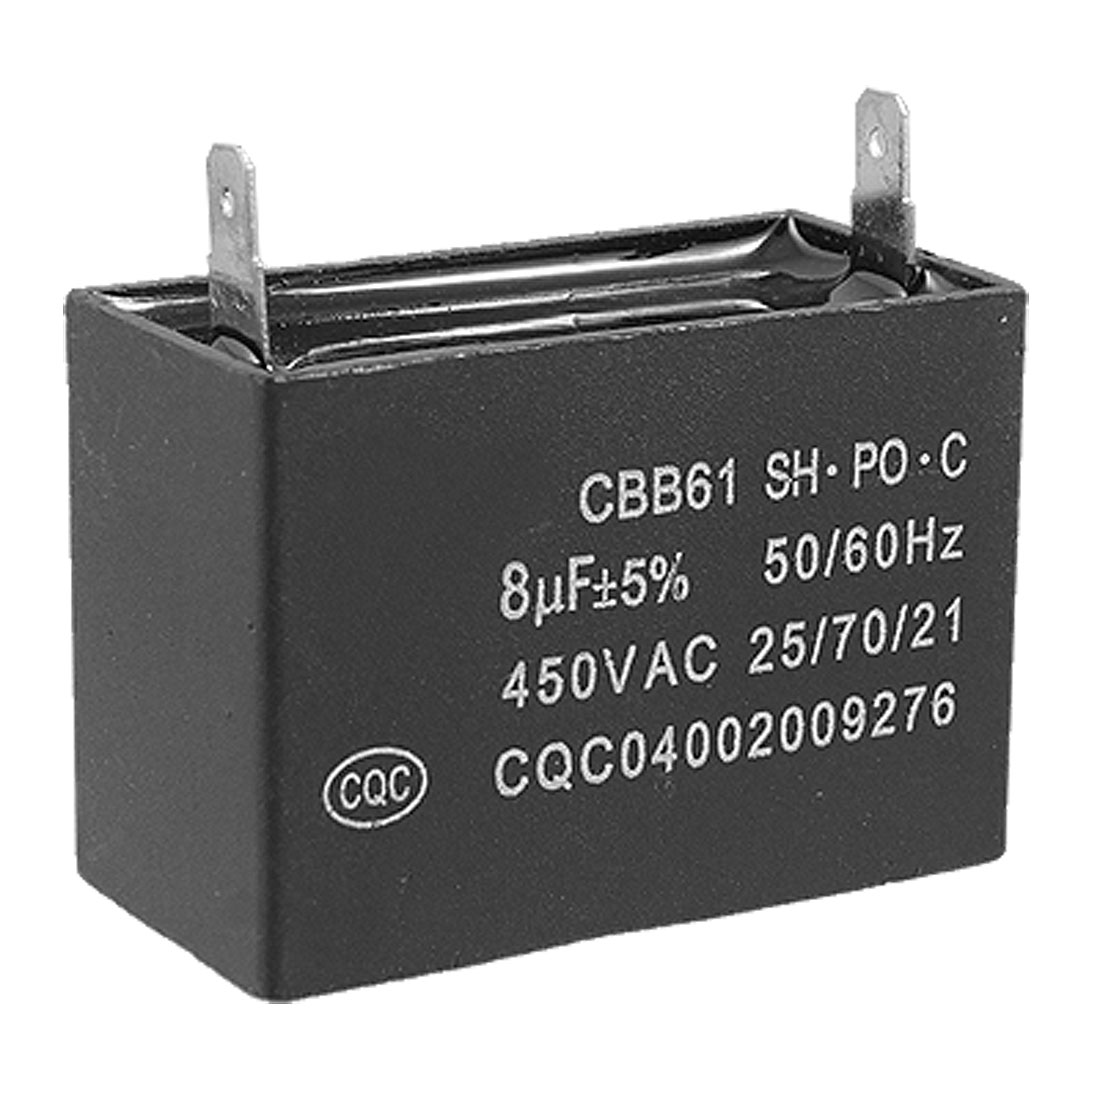 CBB61 Air Conditioner Fan Motor Running Capacitor 8uF 450V AC 50/60 Hz